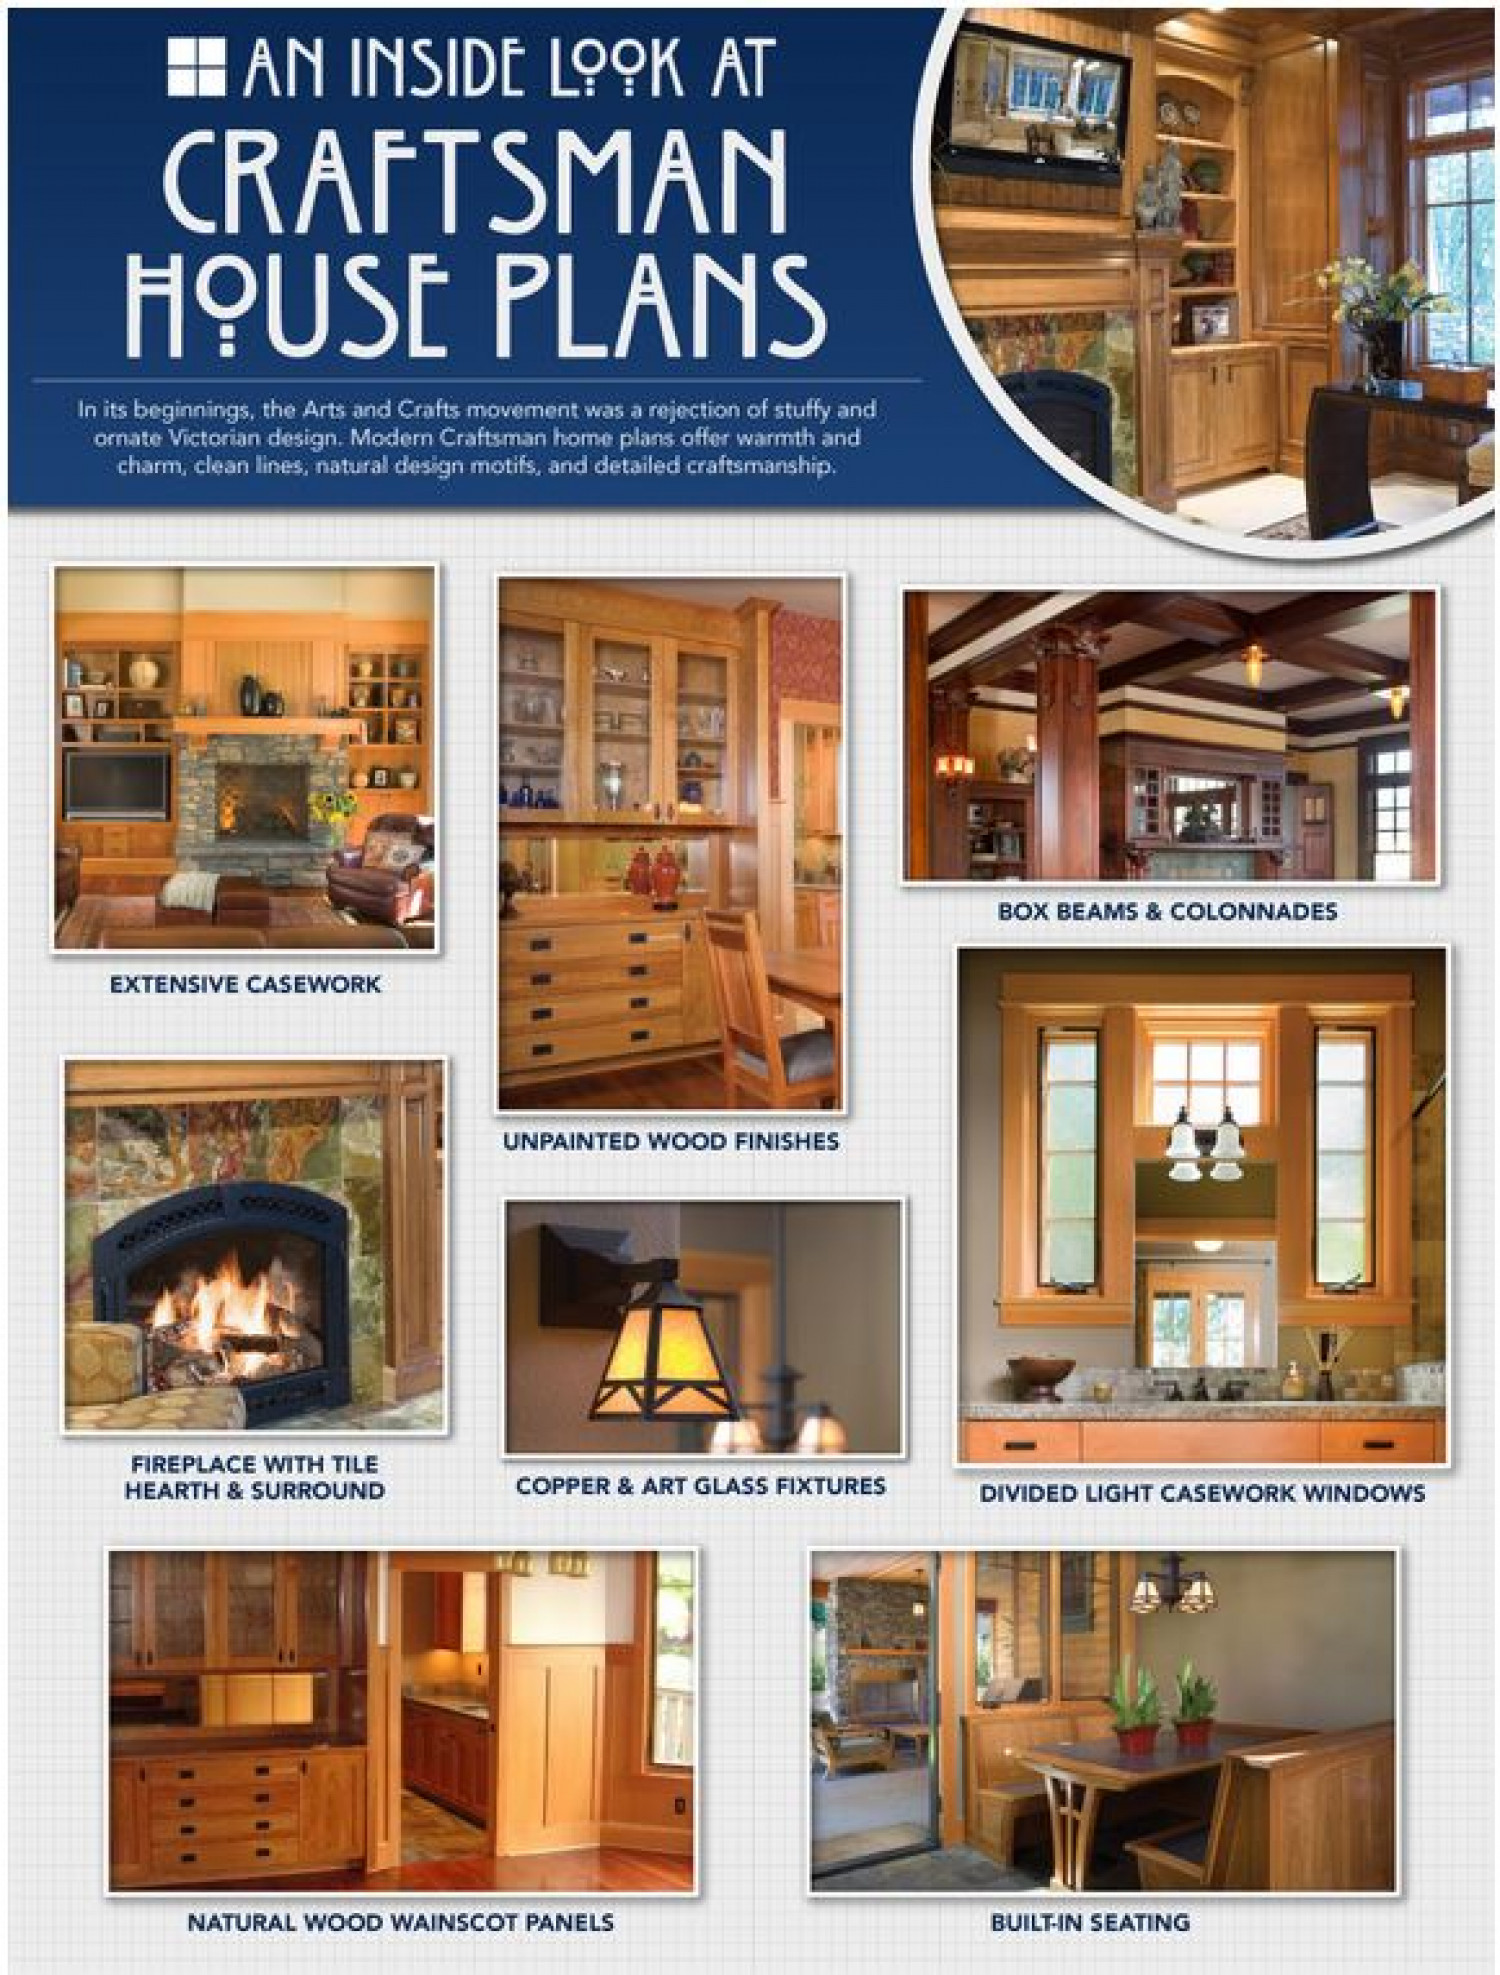 An Inside Look at Craftsman House Plans Infographic